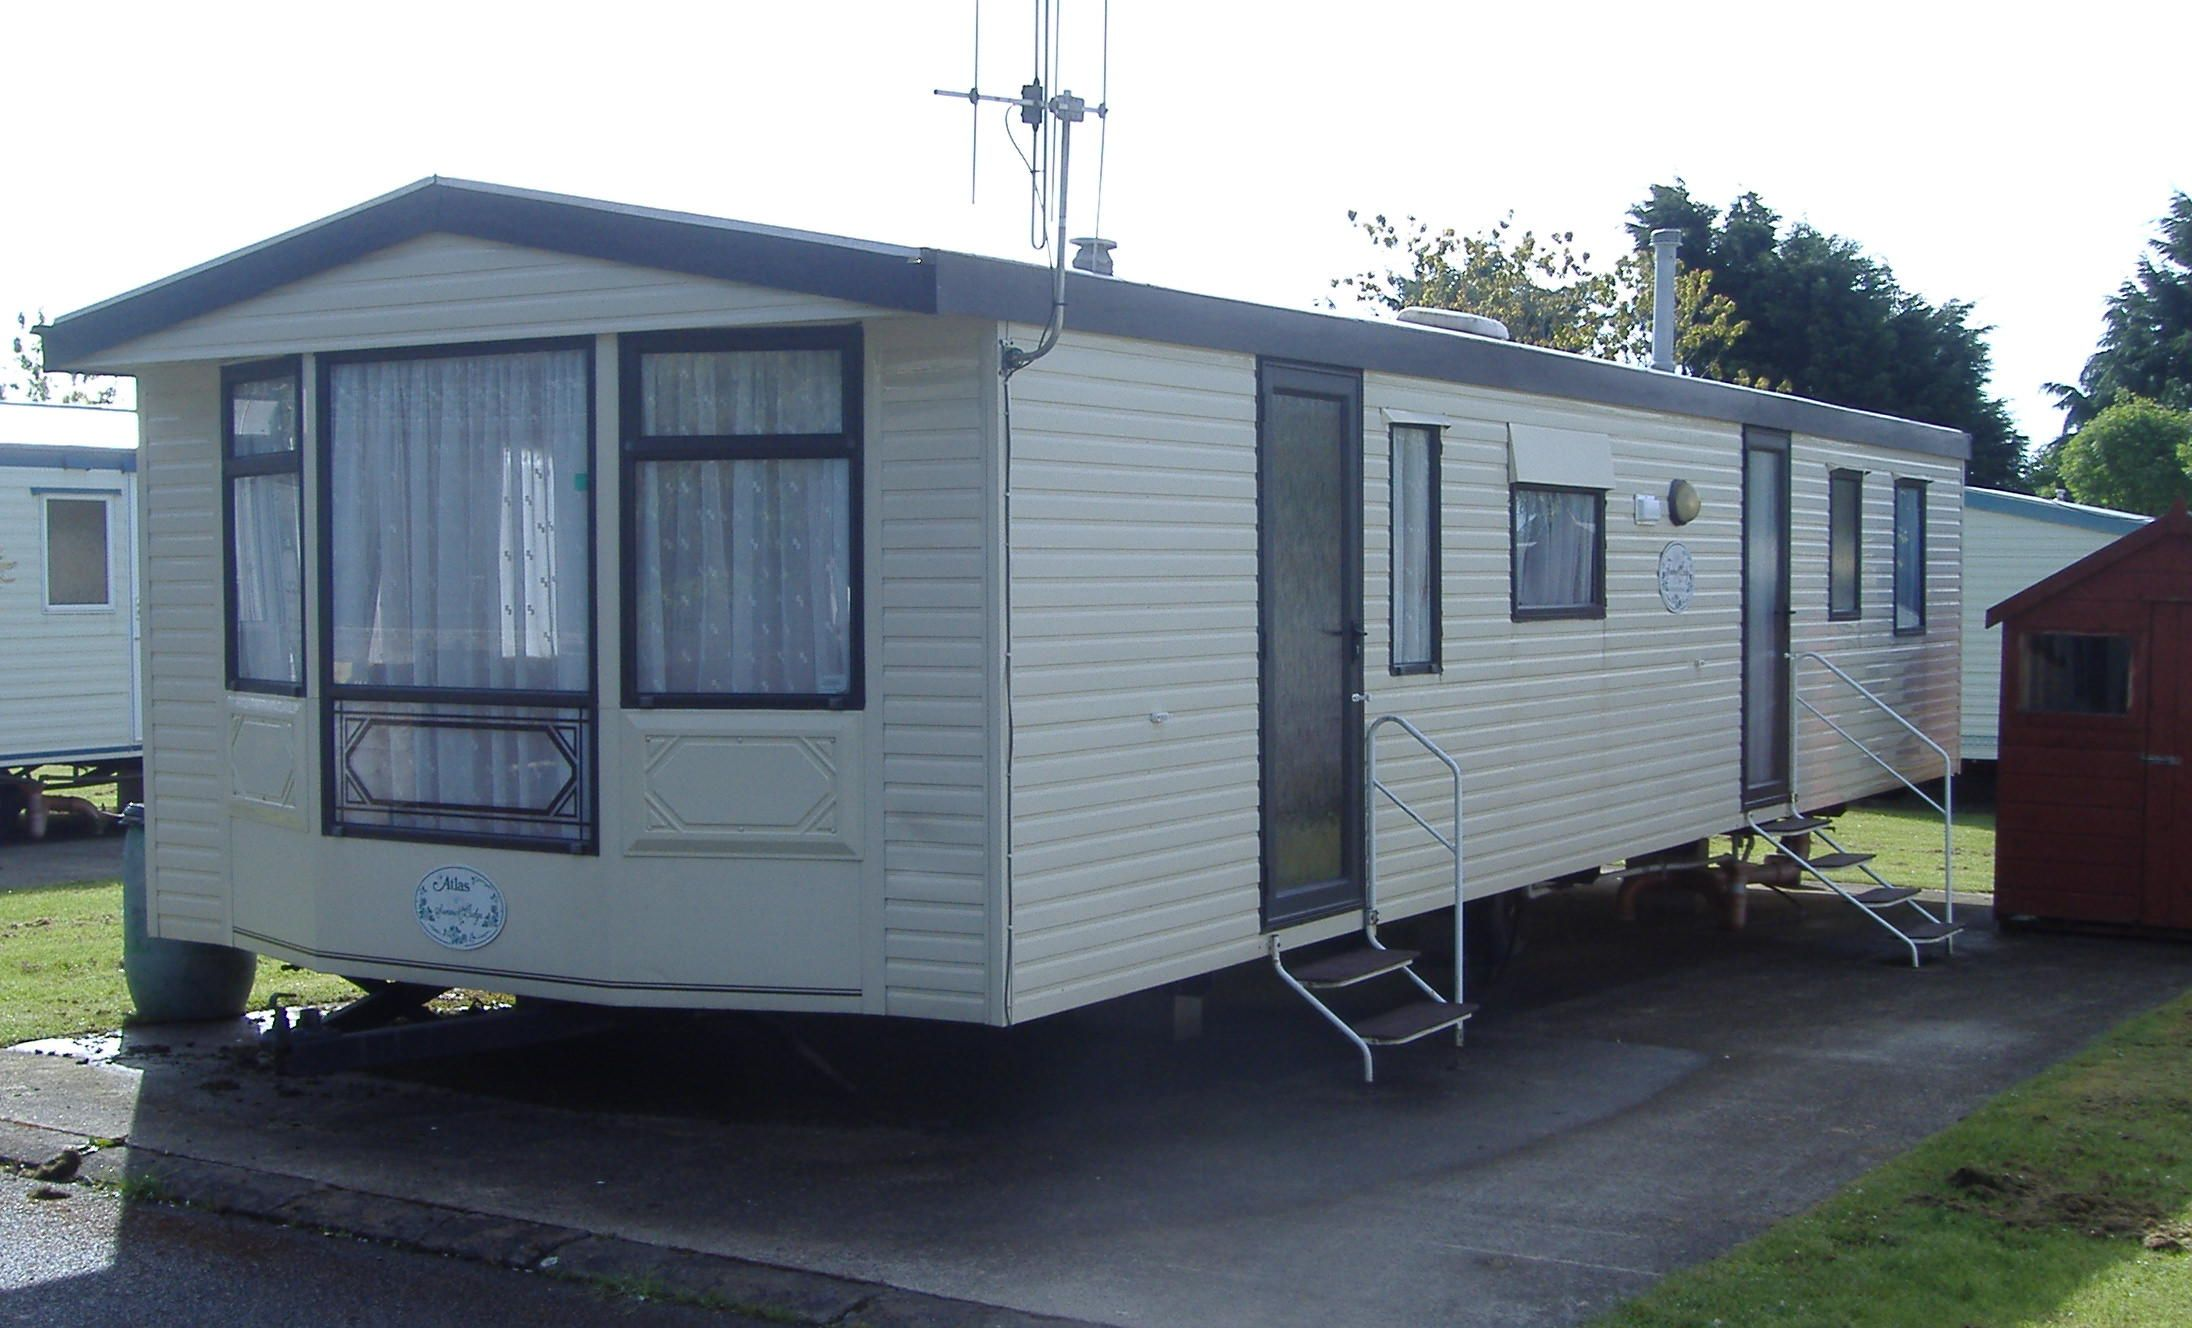 Malibu Mobile Home With Lots Of Great Mobile Home: Manufactured Mobile Homes For Sale Call 866-662-4516 For